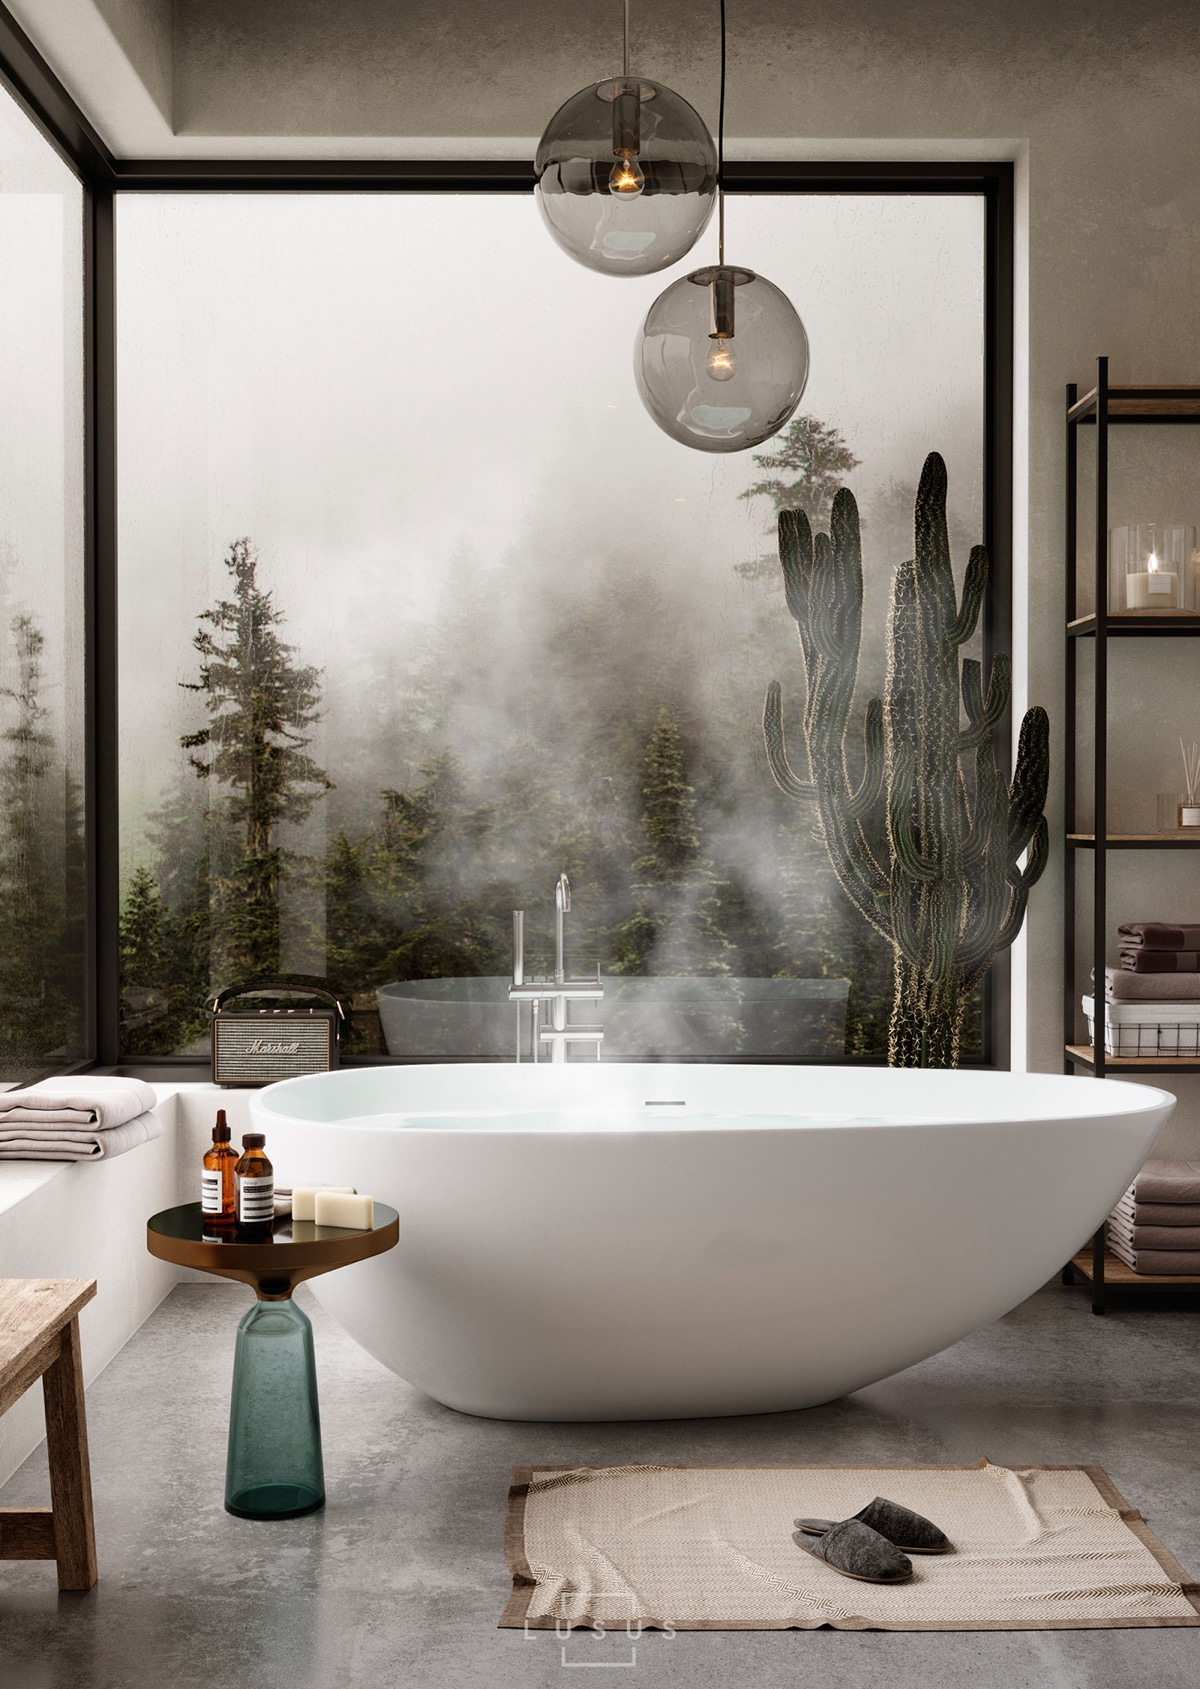 50 Luxury Bathrooms And Tips You Can Copy From Them images 8